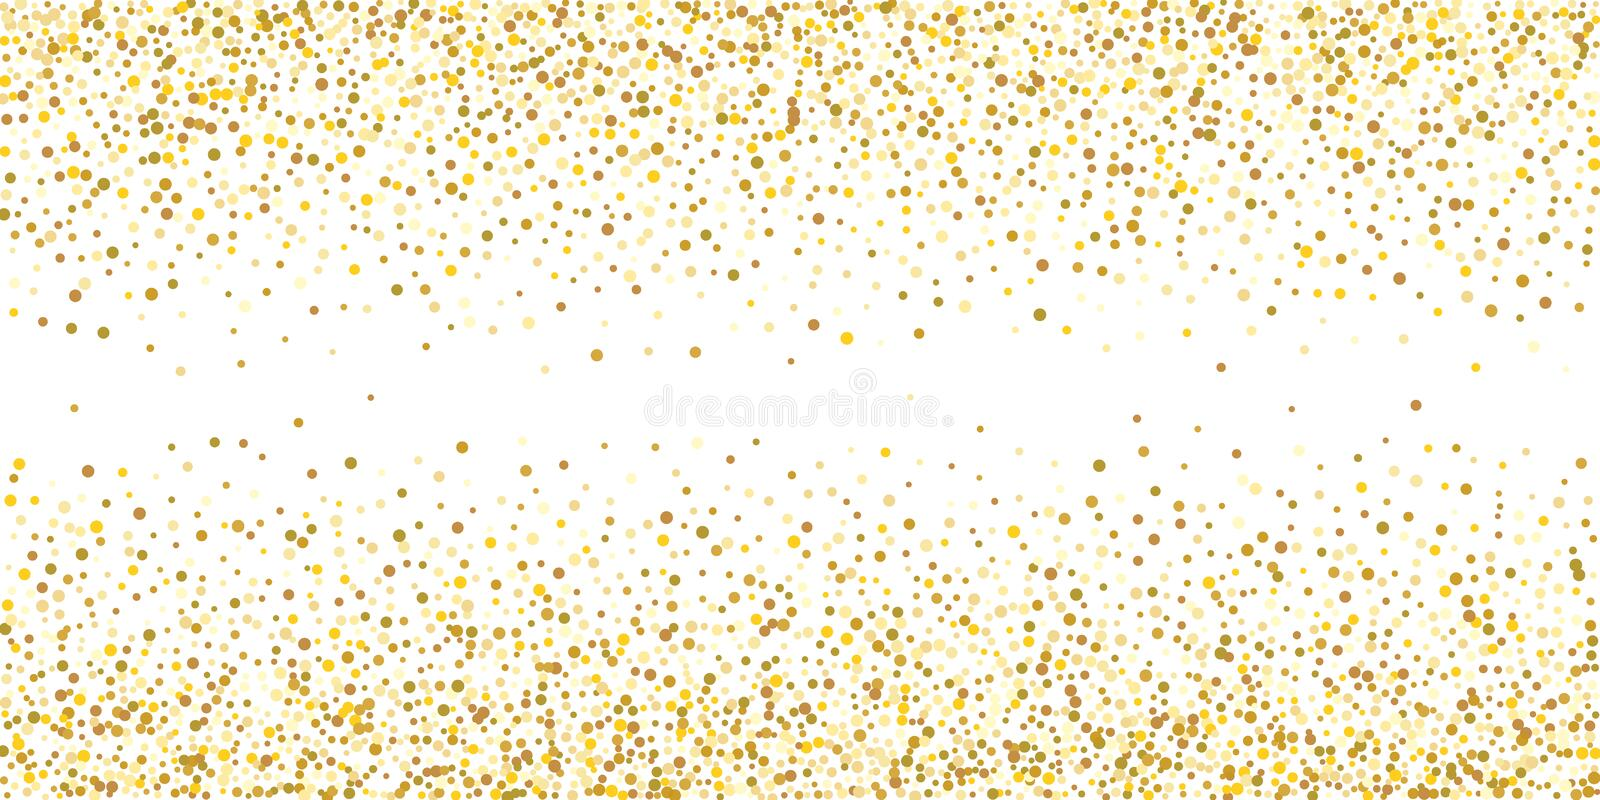 Golden glitter confetti. On a white background. Illustration of a drop of shiny particles. Decorative element. Luxury background for your design, cards royalty free stock image